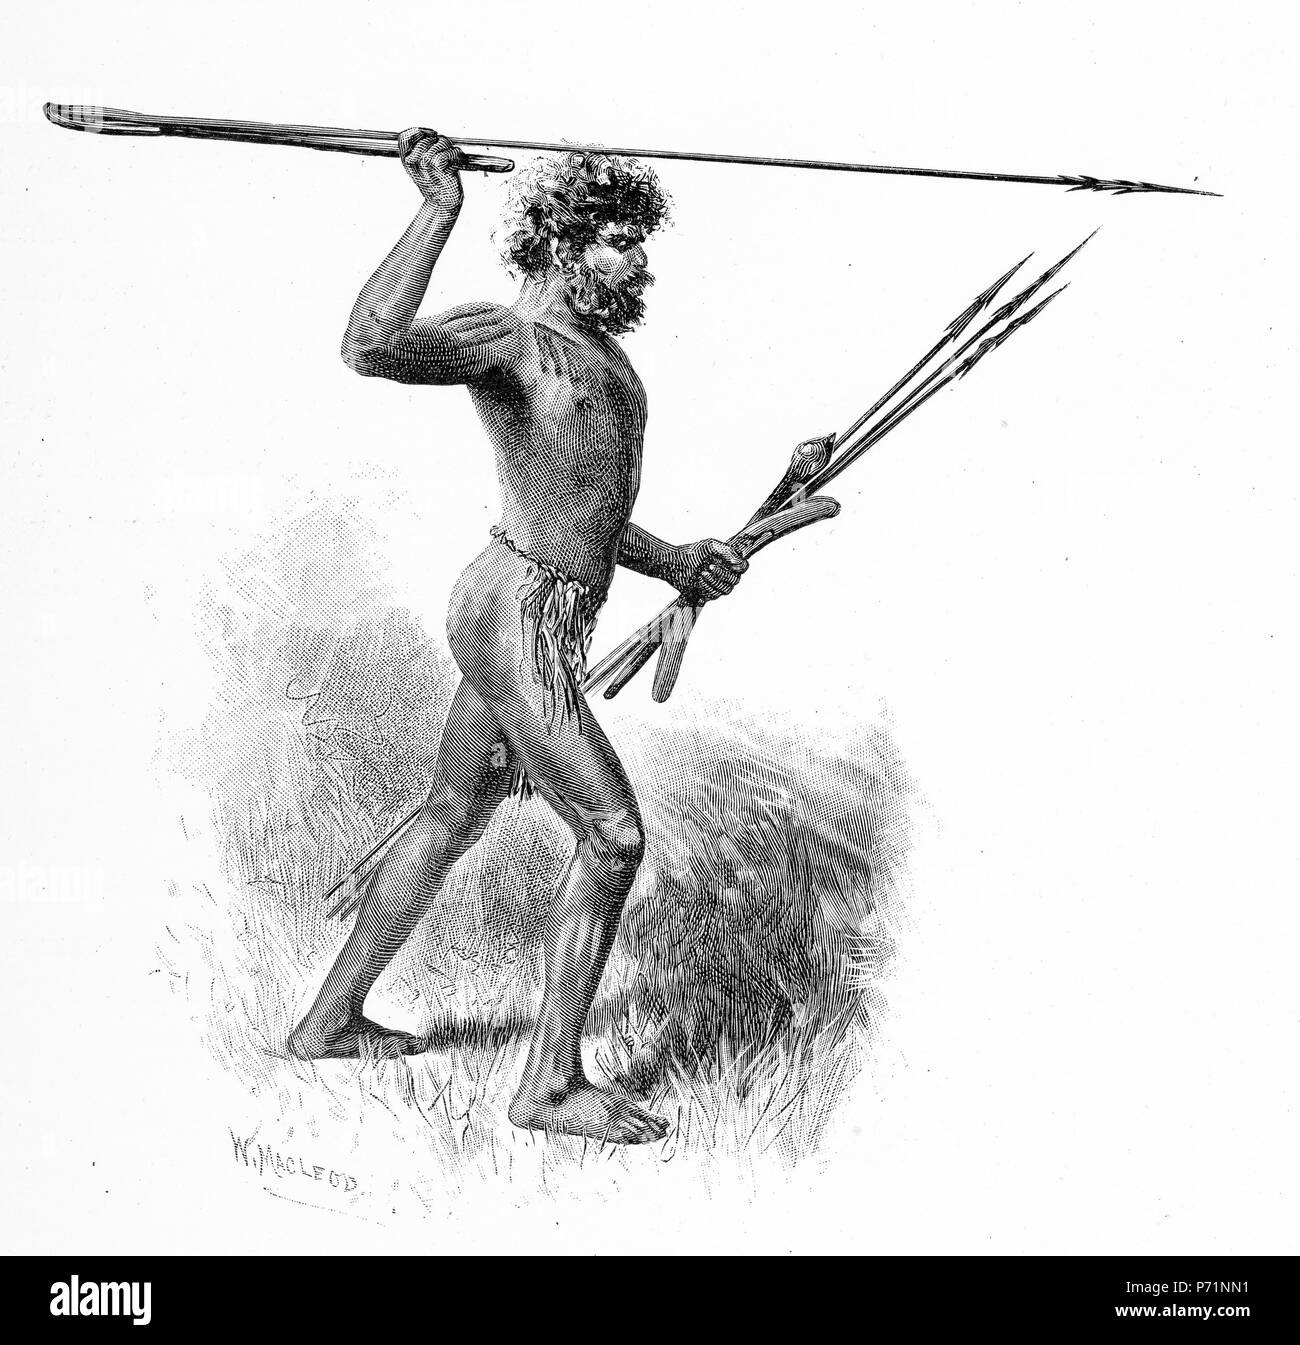 Engraving of an Aboriginal warrior throwing a spear with the aid of a woomera or throwing stick, Australia. From the Picturesque Atlas of Australasia Vol 3, 1886 Stock Photo